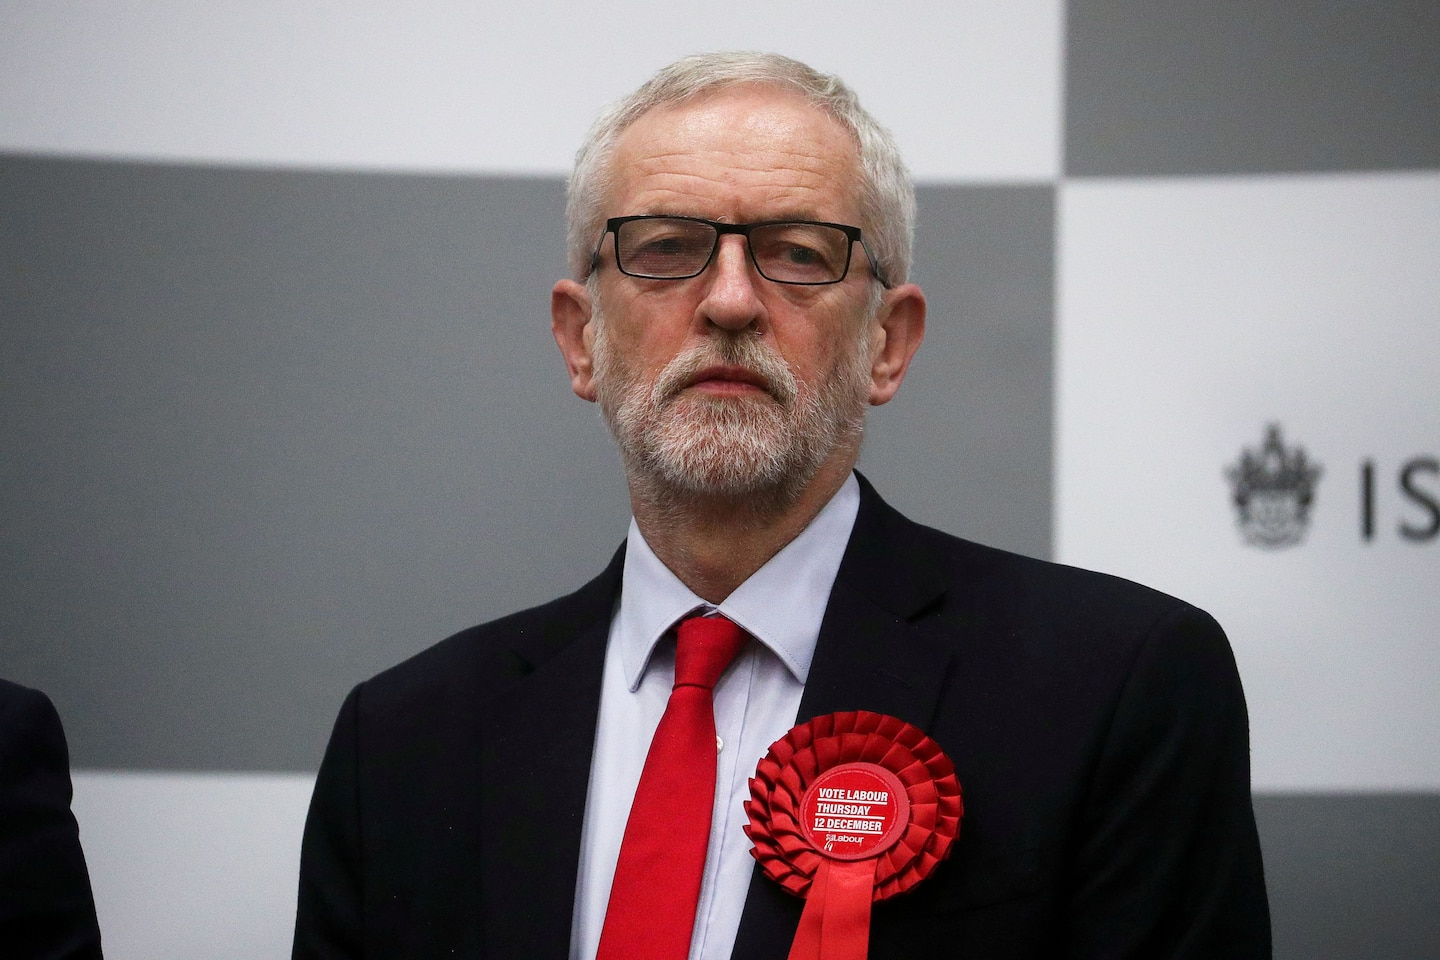 Jeremy Corbyn suspended from Labour Party over comments about anti-Semitism report